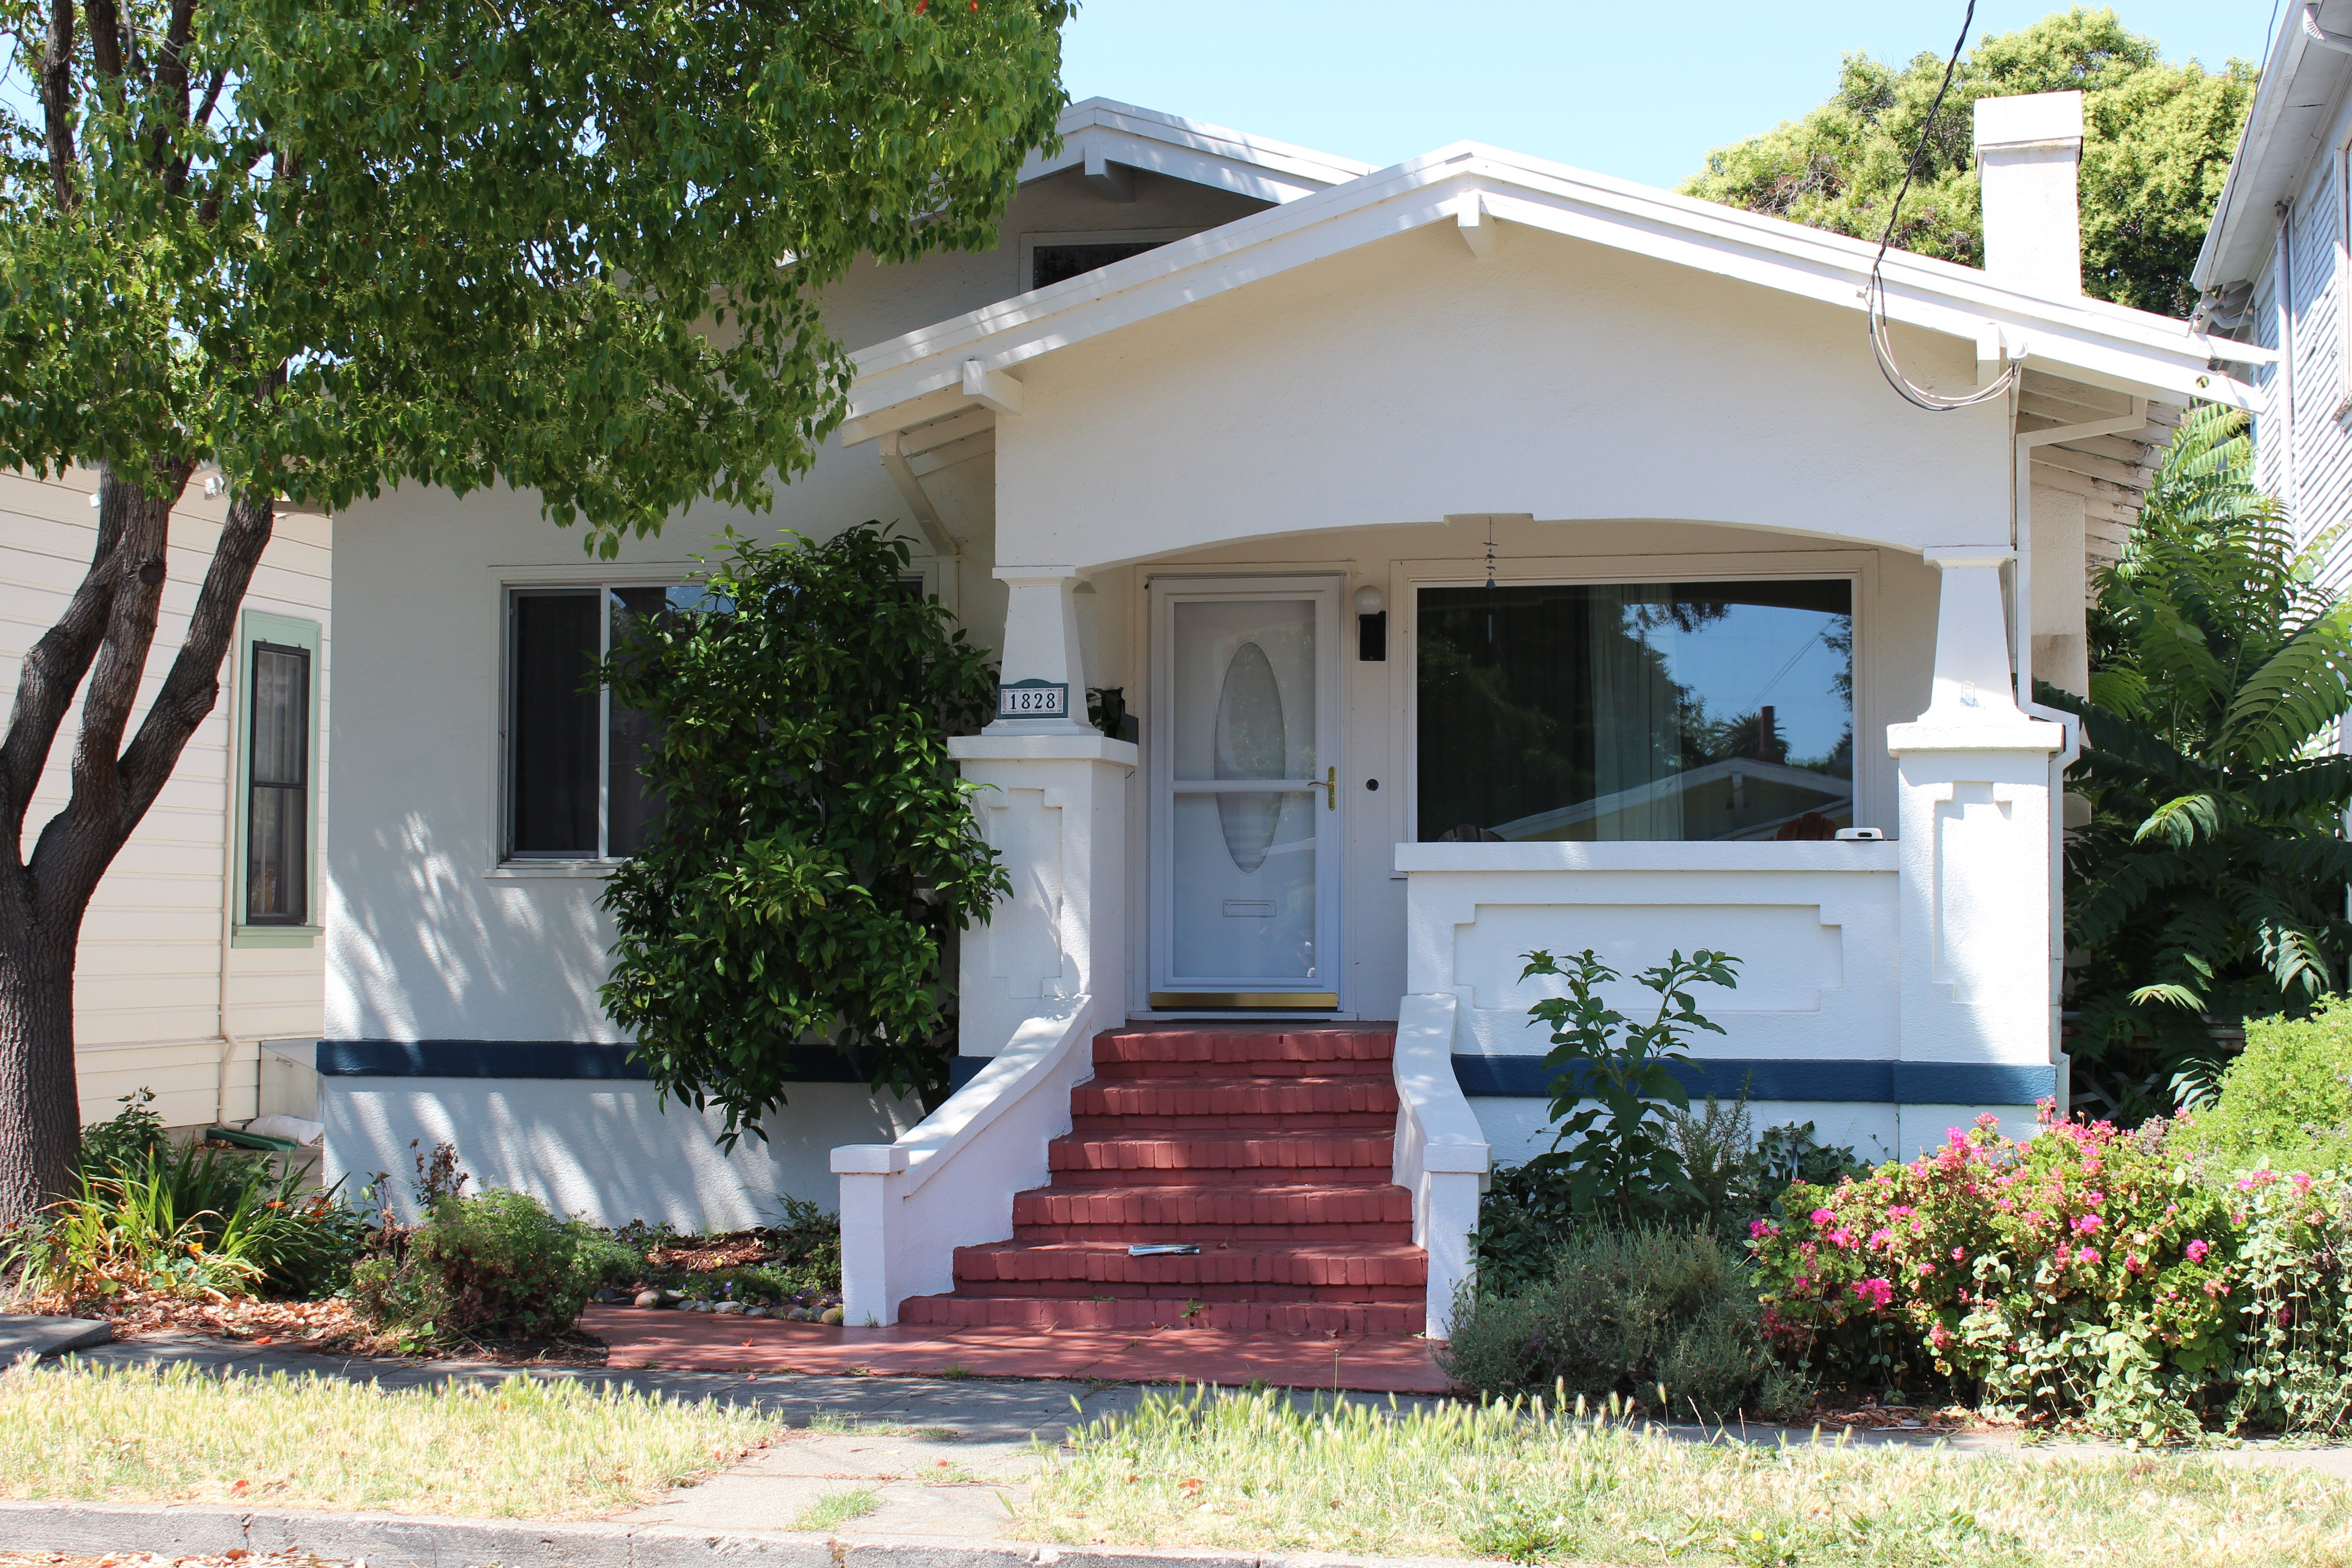 Downtown Martinez Home for sale! - PENDING SALE